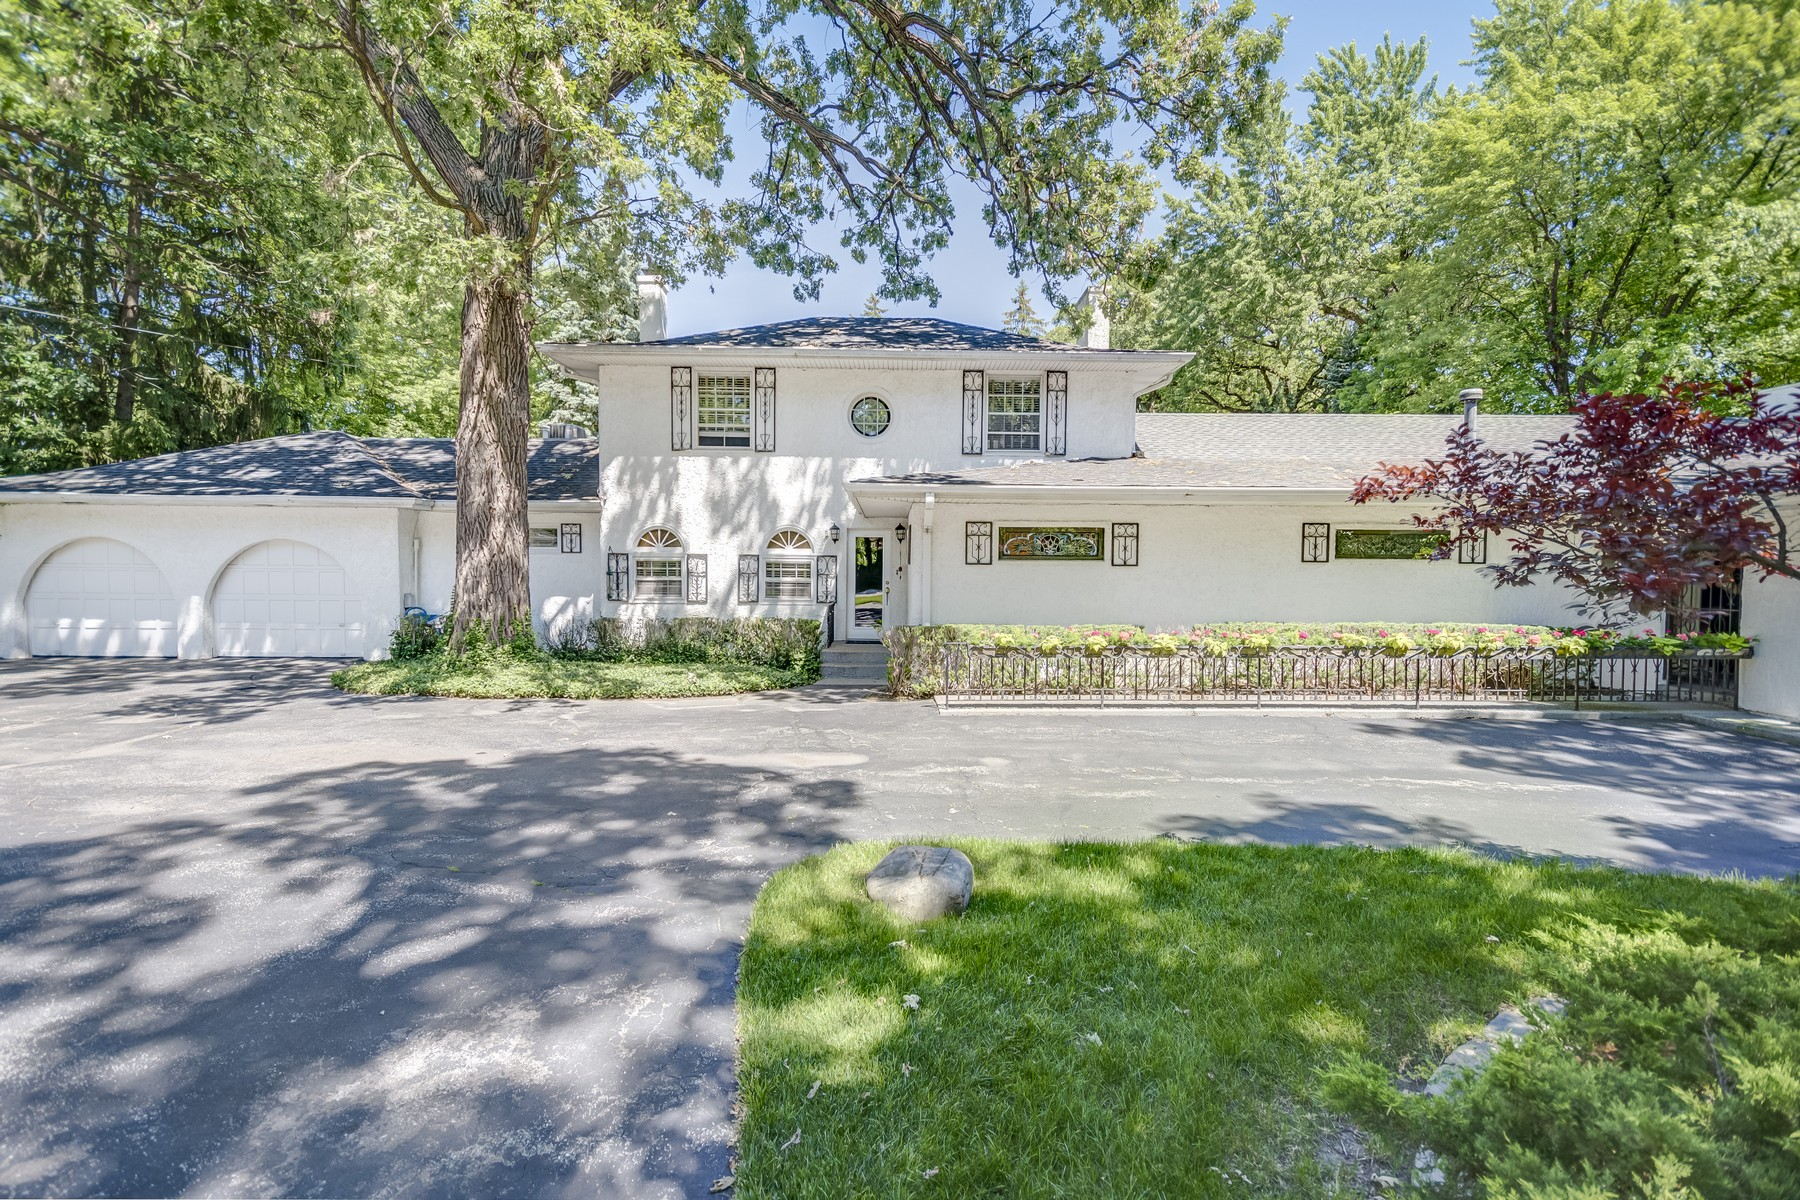 Single Family Home for Sale at Country Club Living on Sprawling Private Estate 301 N East River Road Des Plaines, 60616 United States